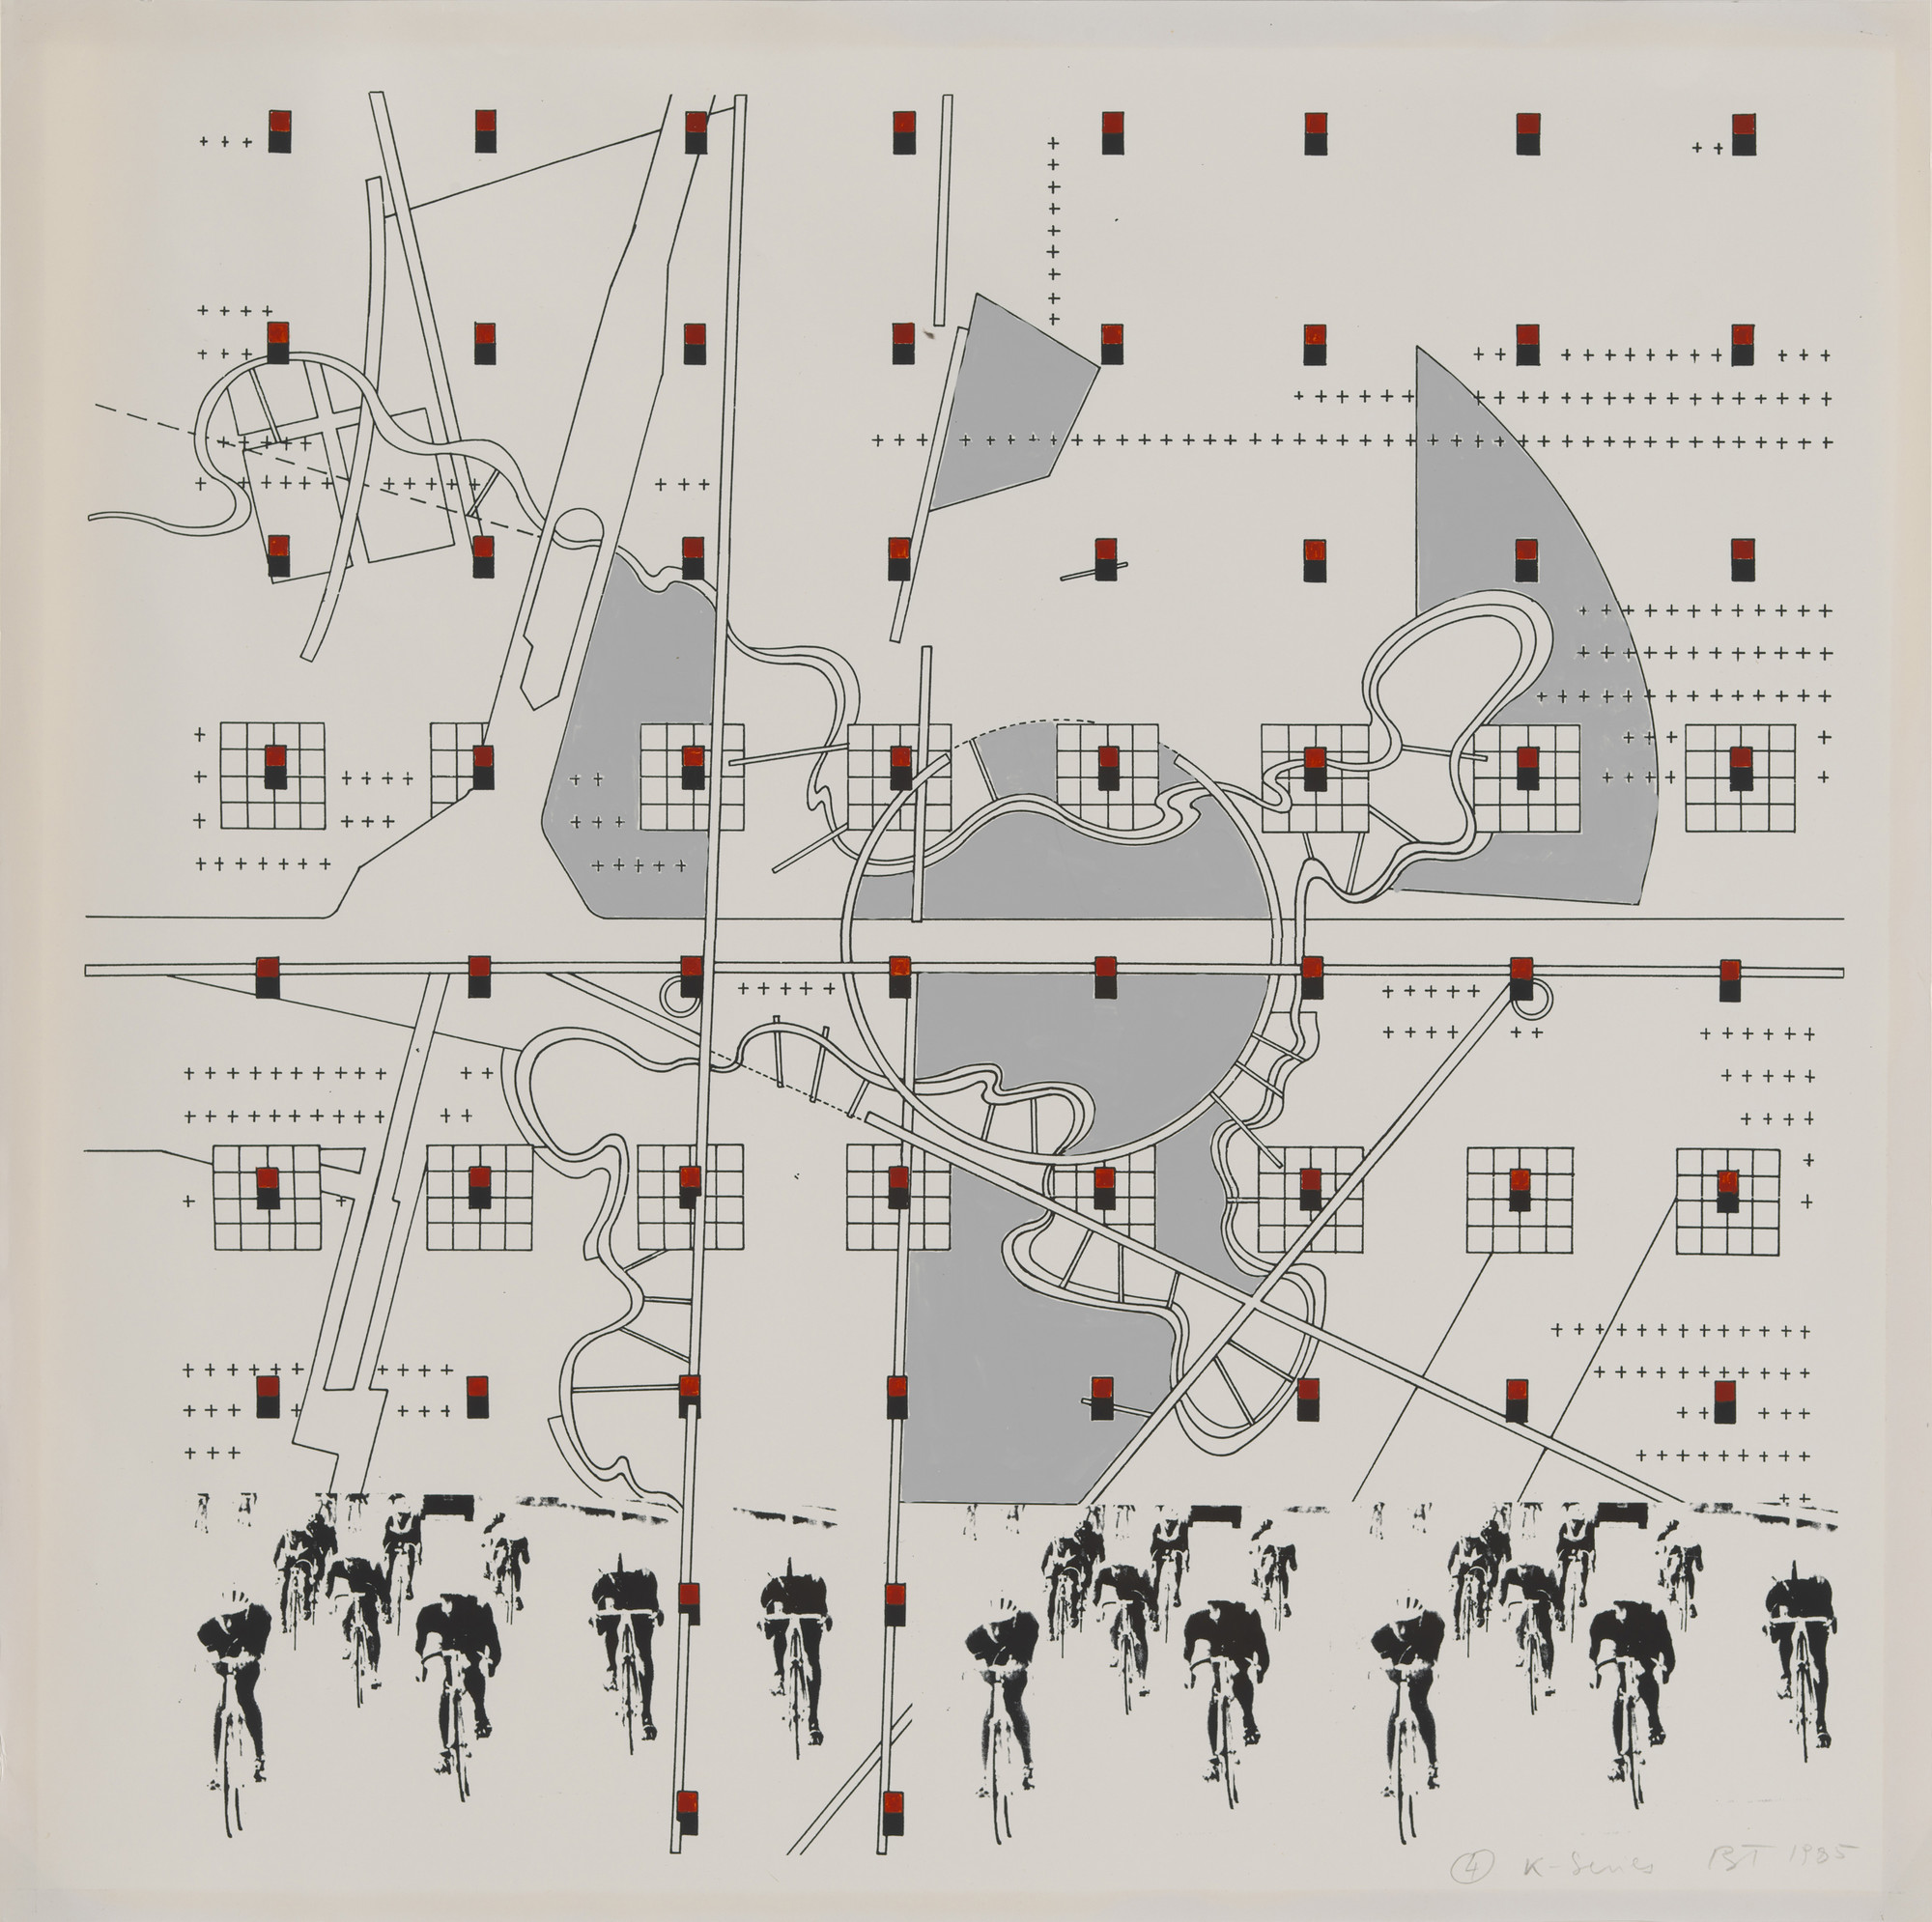 Famous Architectural Drawings Drawings From Famous Architects' Formative Stages To Be Exhibited .